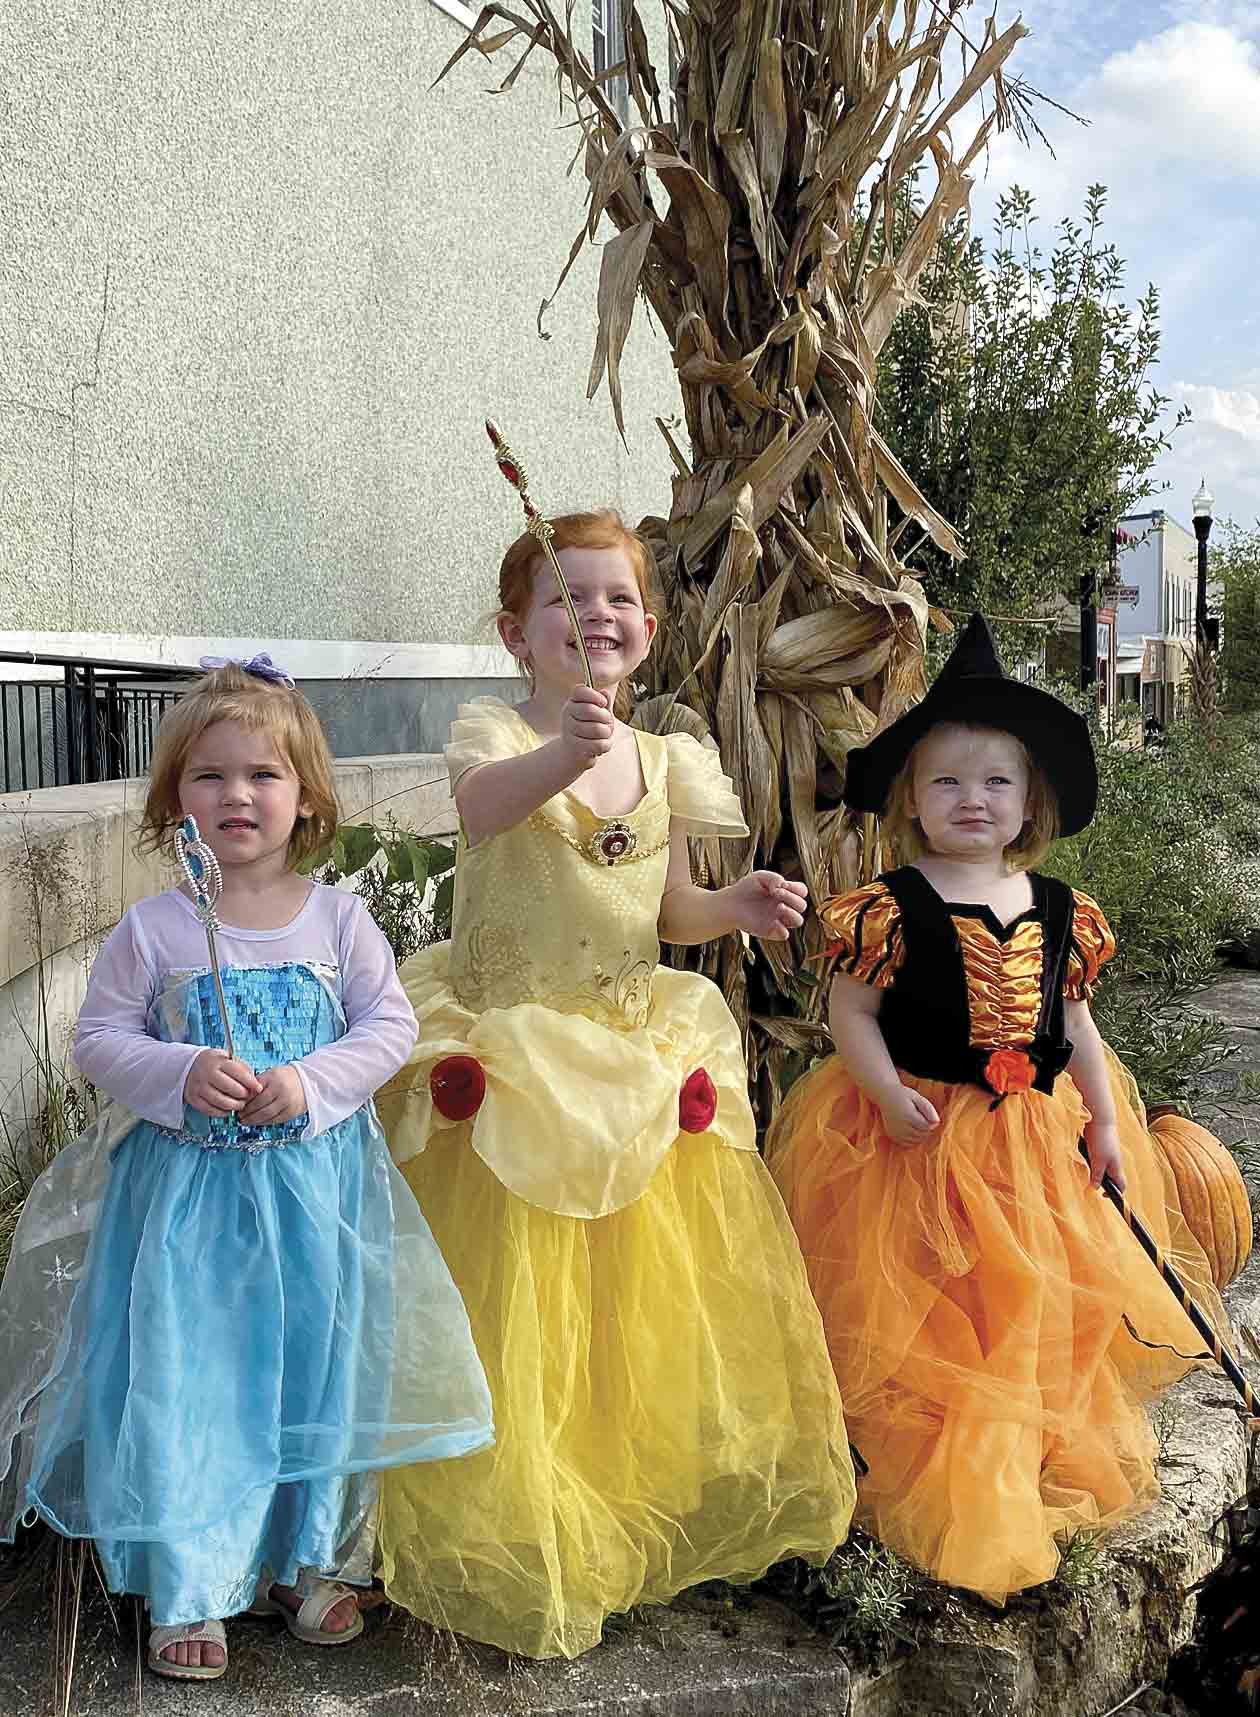 The excitement is mounting for Terry and Shari Lauer's granddaughters (l - r) 2-year-old Ryleigh Lueder, 4-year-old Reagan Lueder and 2-year old Evelyn Boyer as they anticipate Halloween festivities that are about to begin this weekend. West Union kicks off its annual Trunk or Treat this...